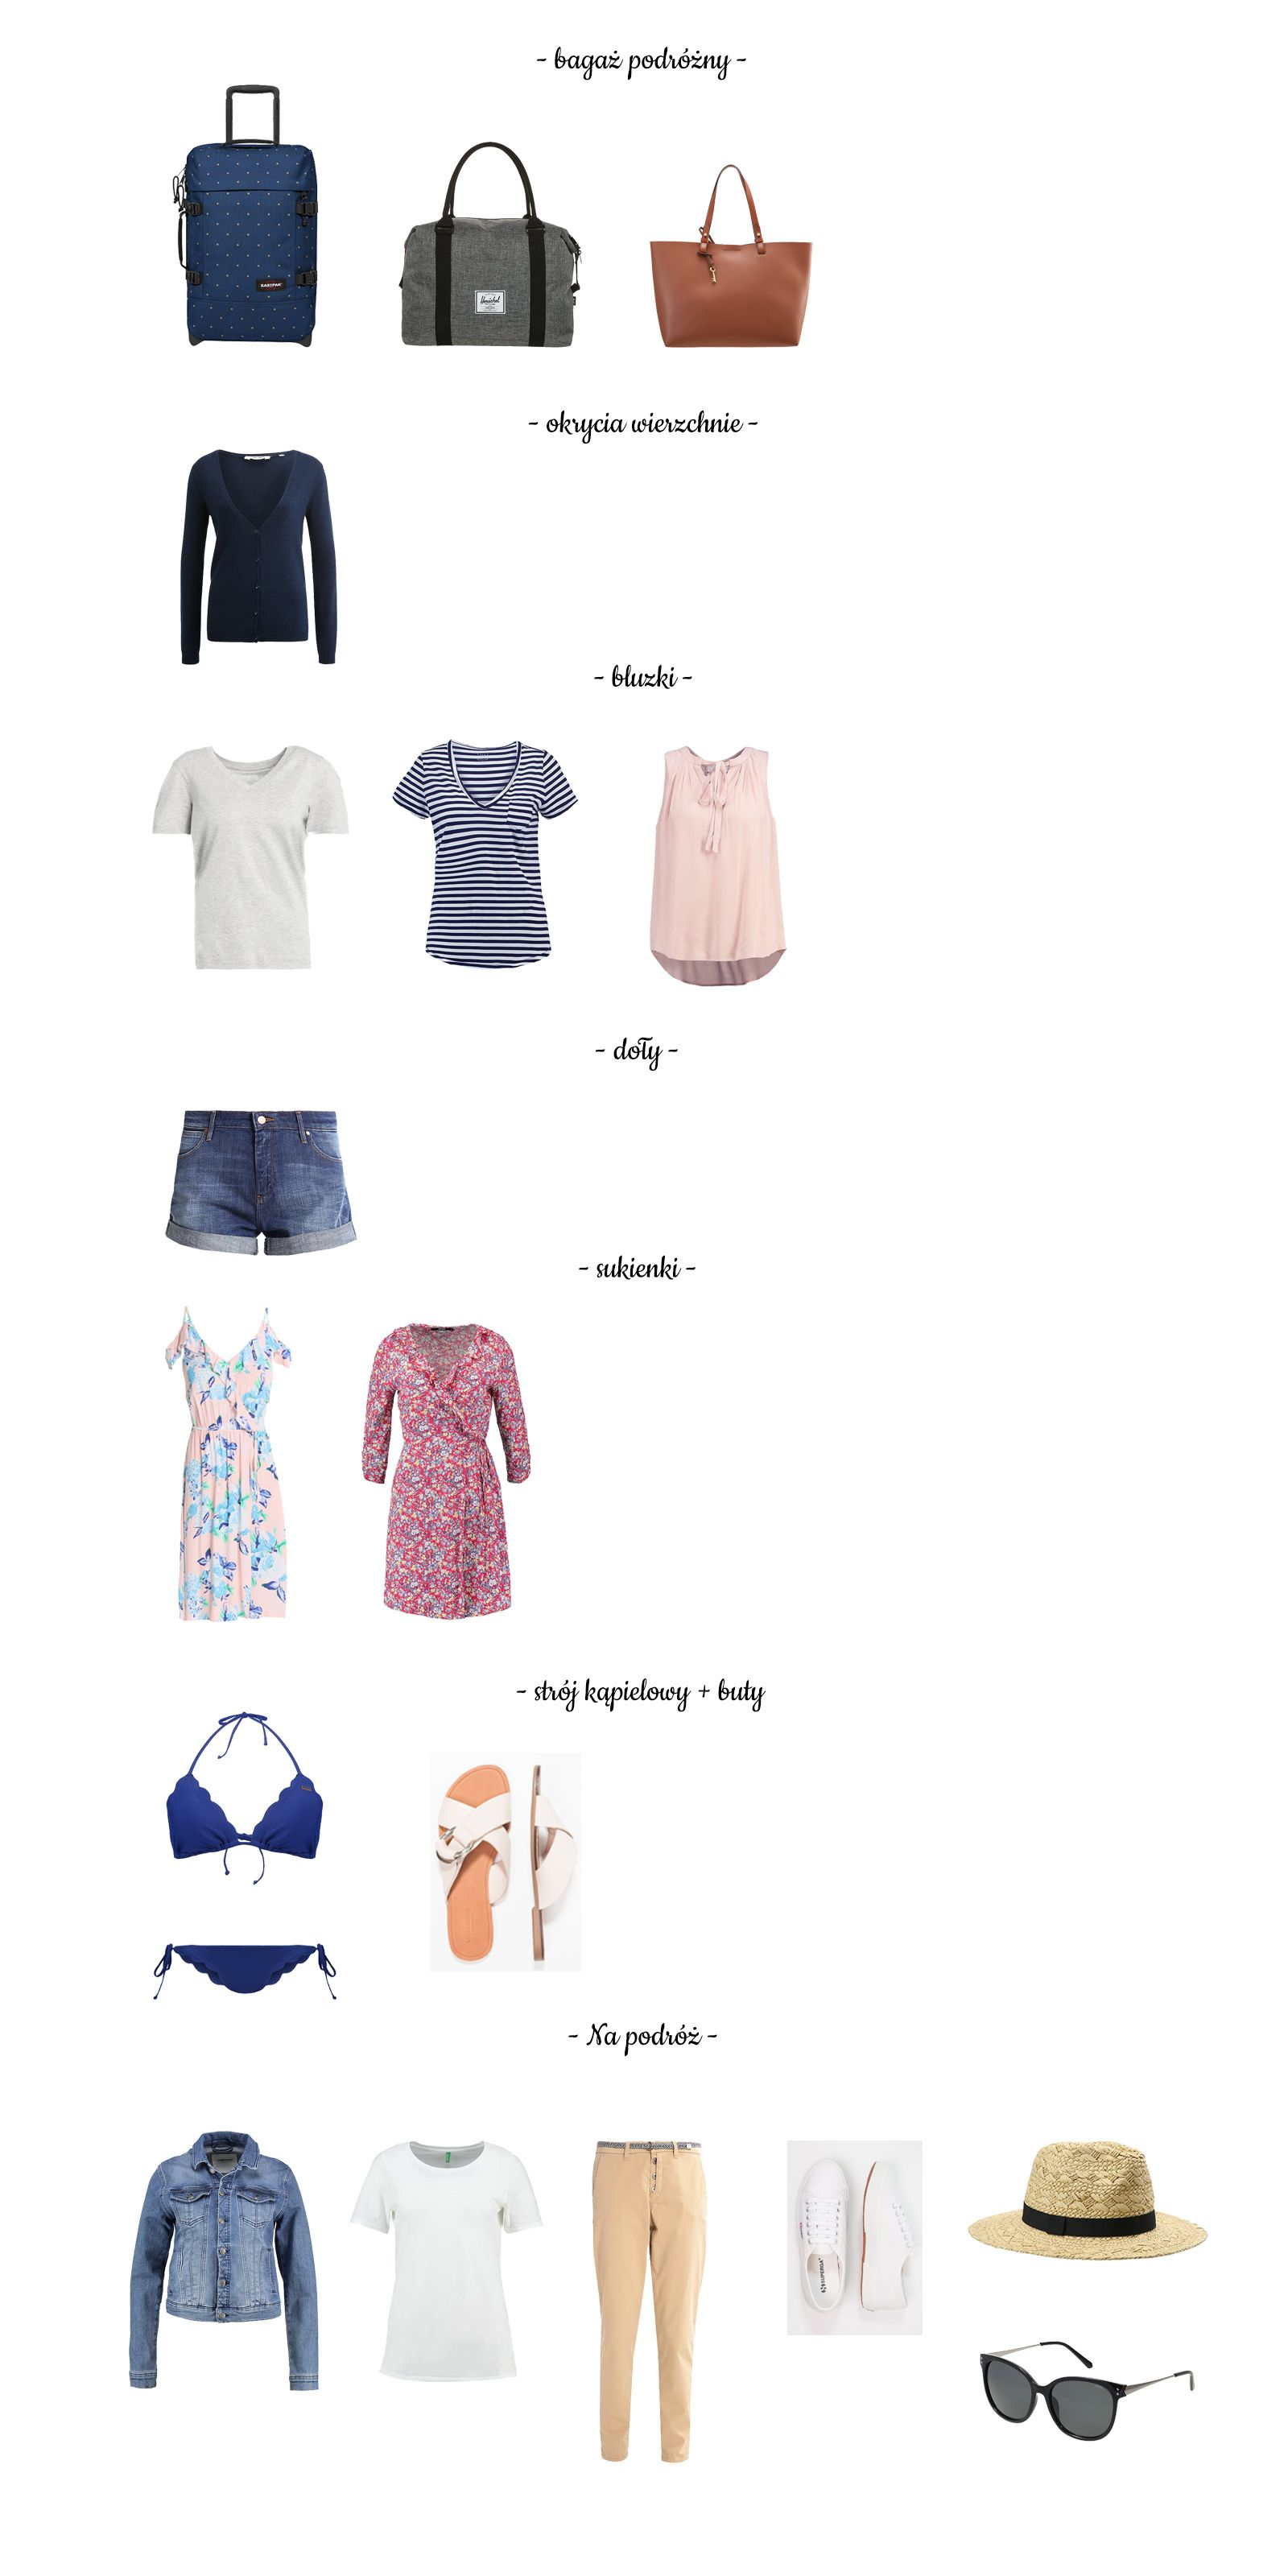 Capsule wardrobe for a trip. How to pack for a two weeks vacation time.